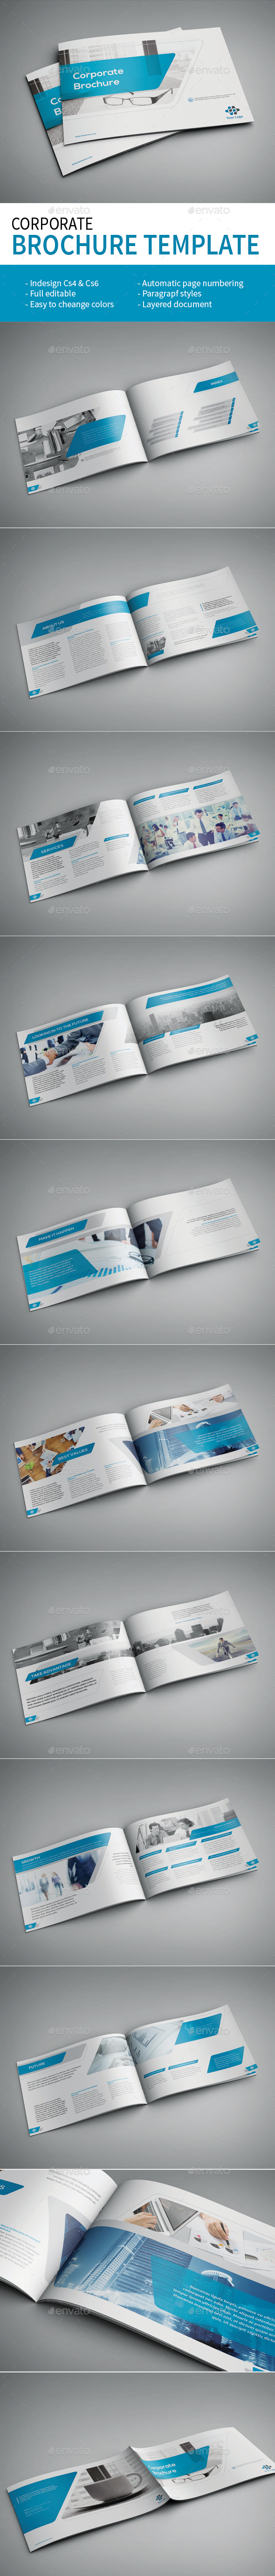 Corporate Brochure - Brochures Print Templates